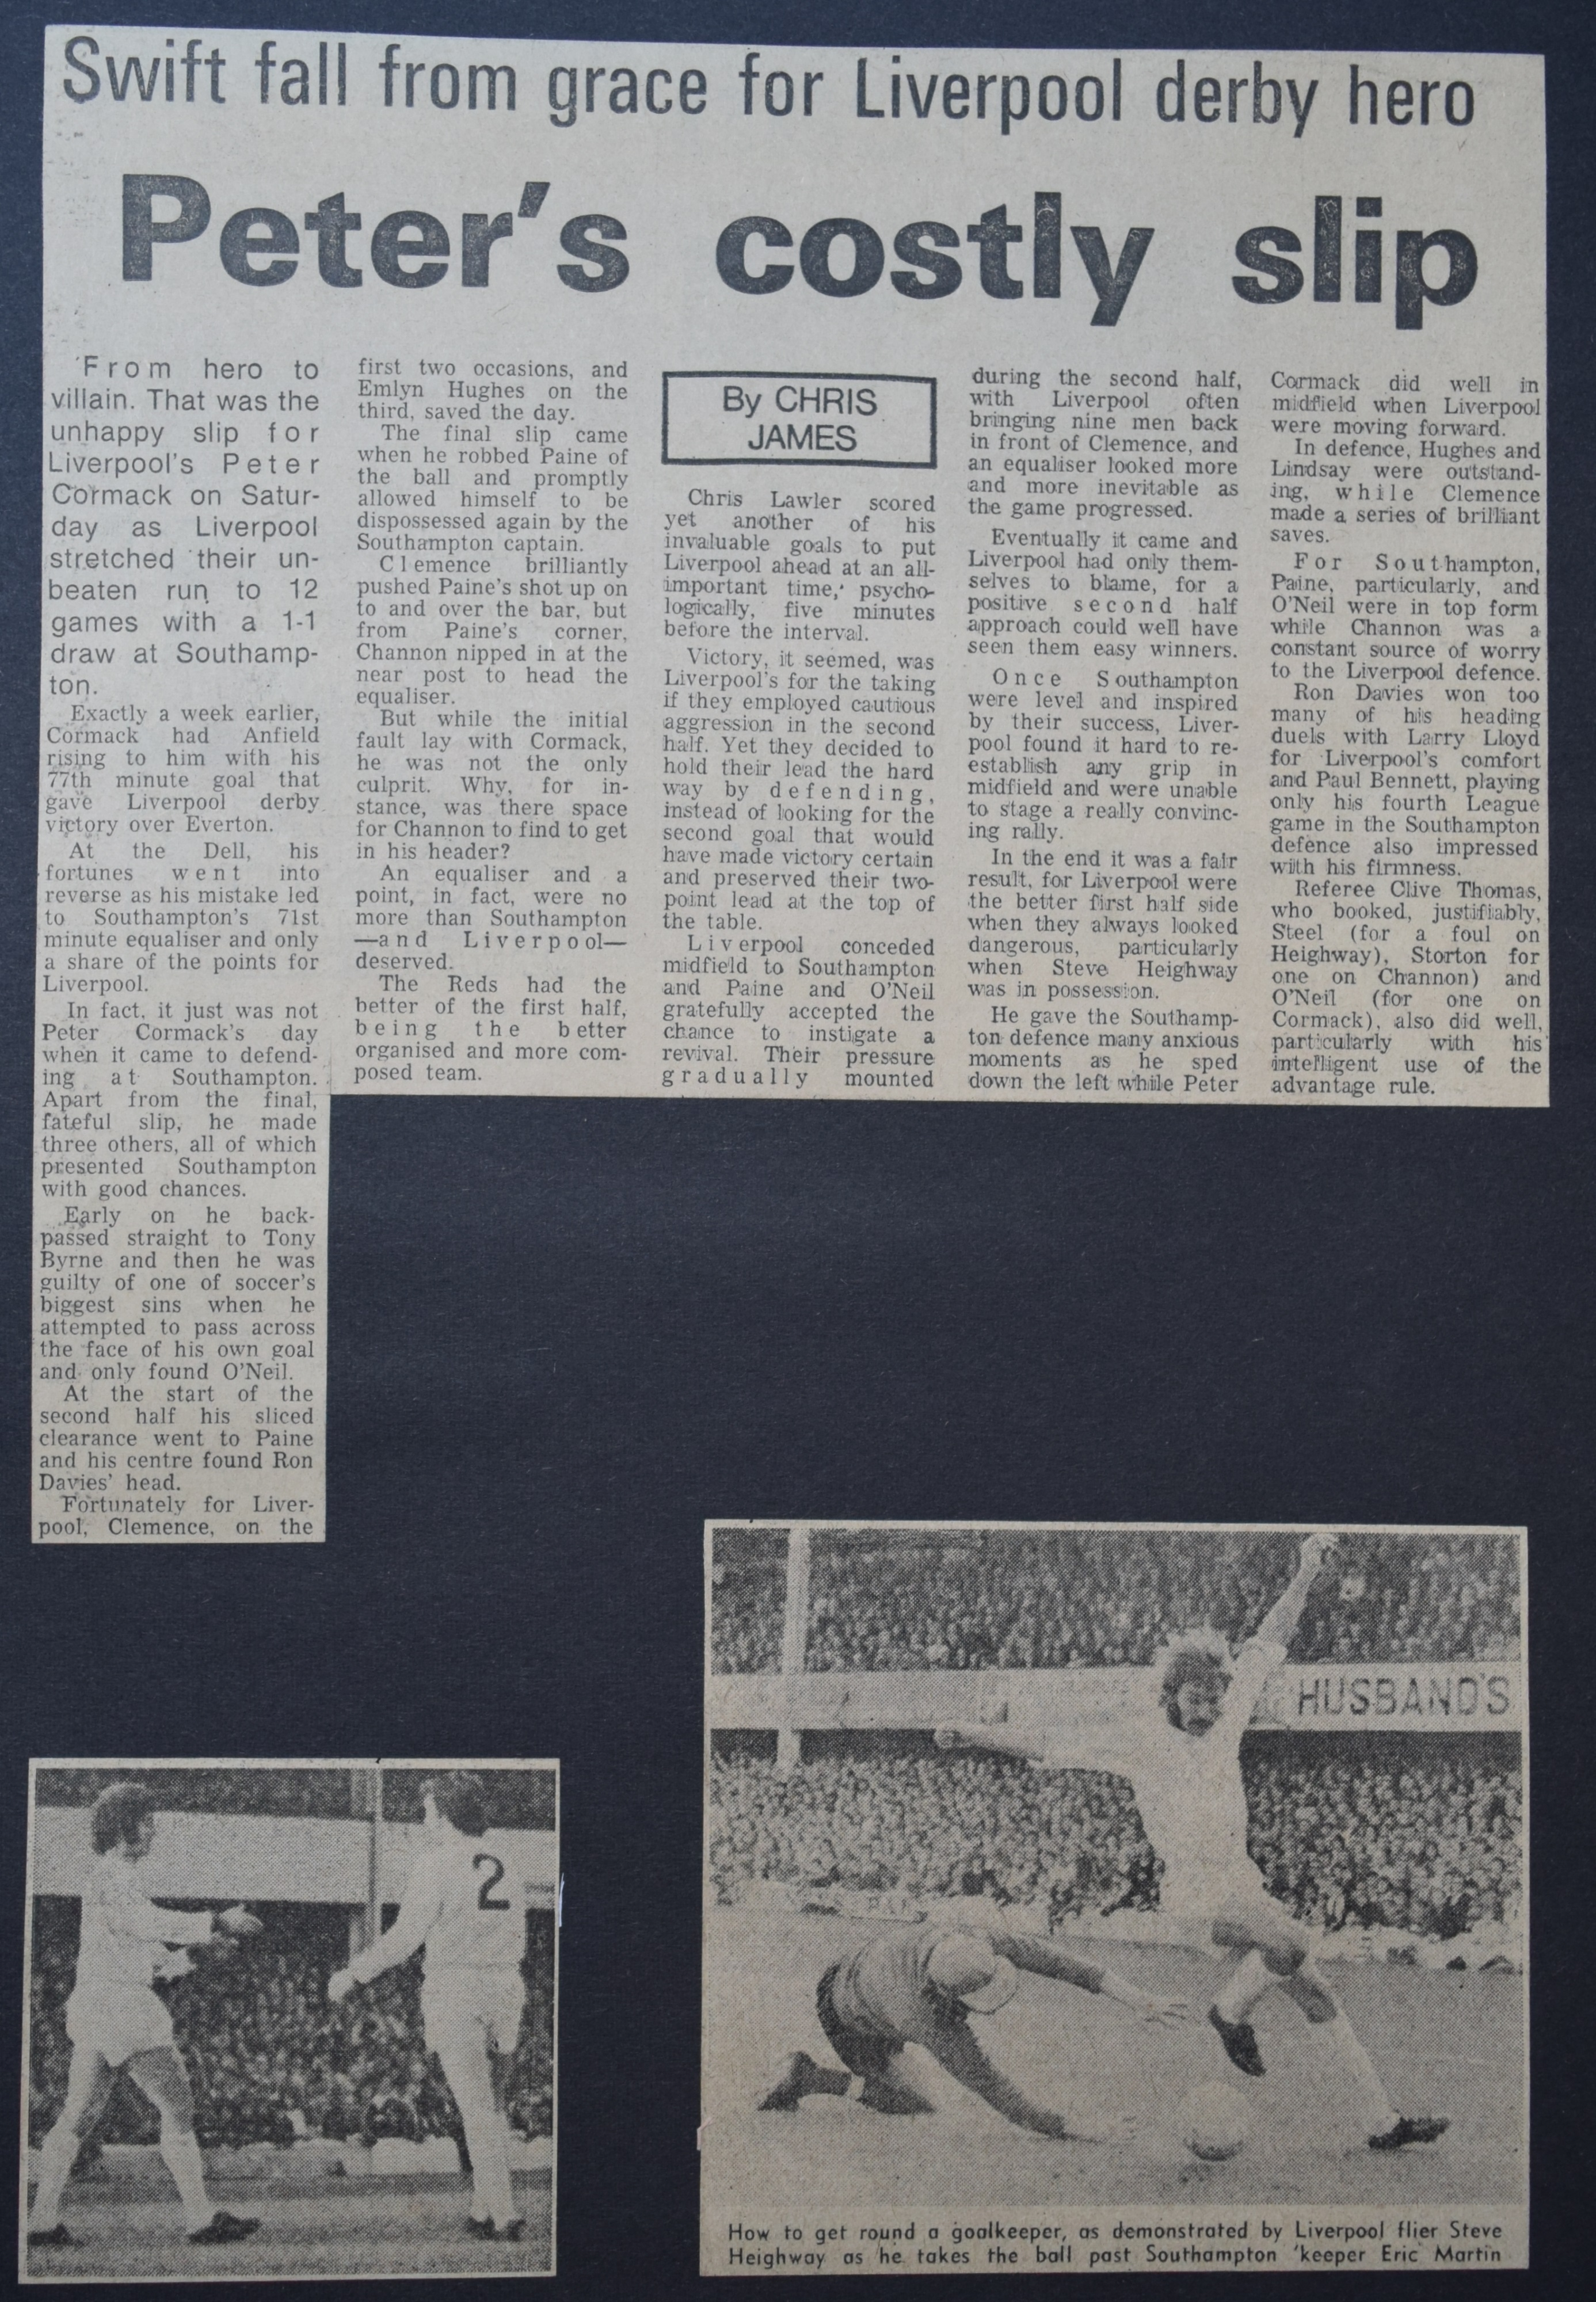 Peter's costly slip - 14 October 1972